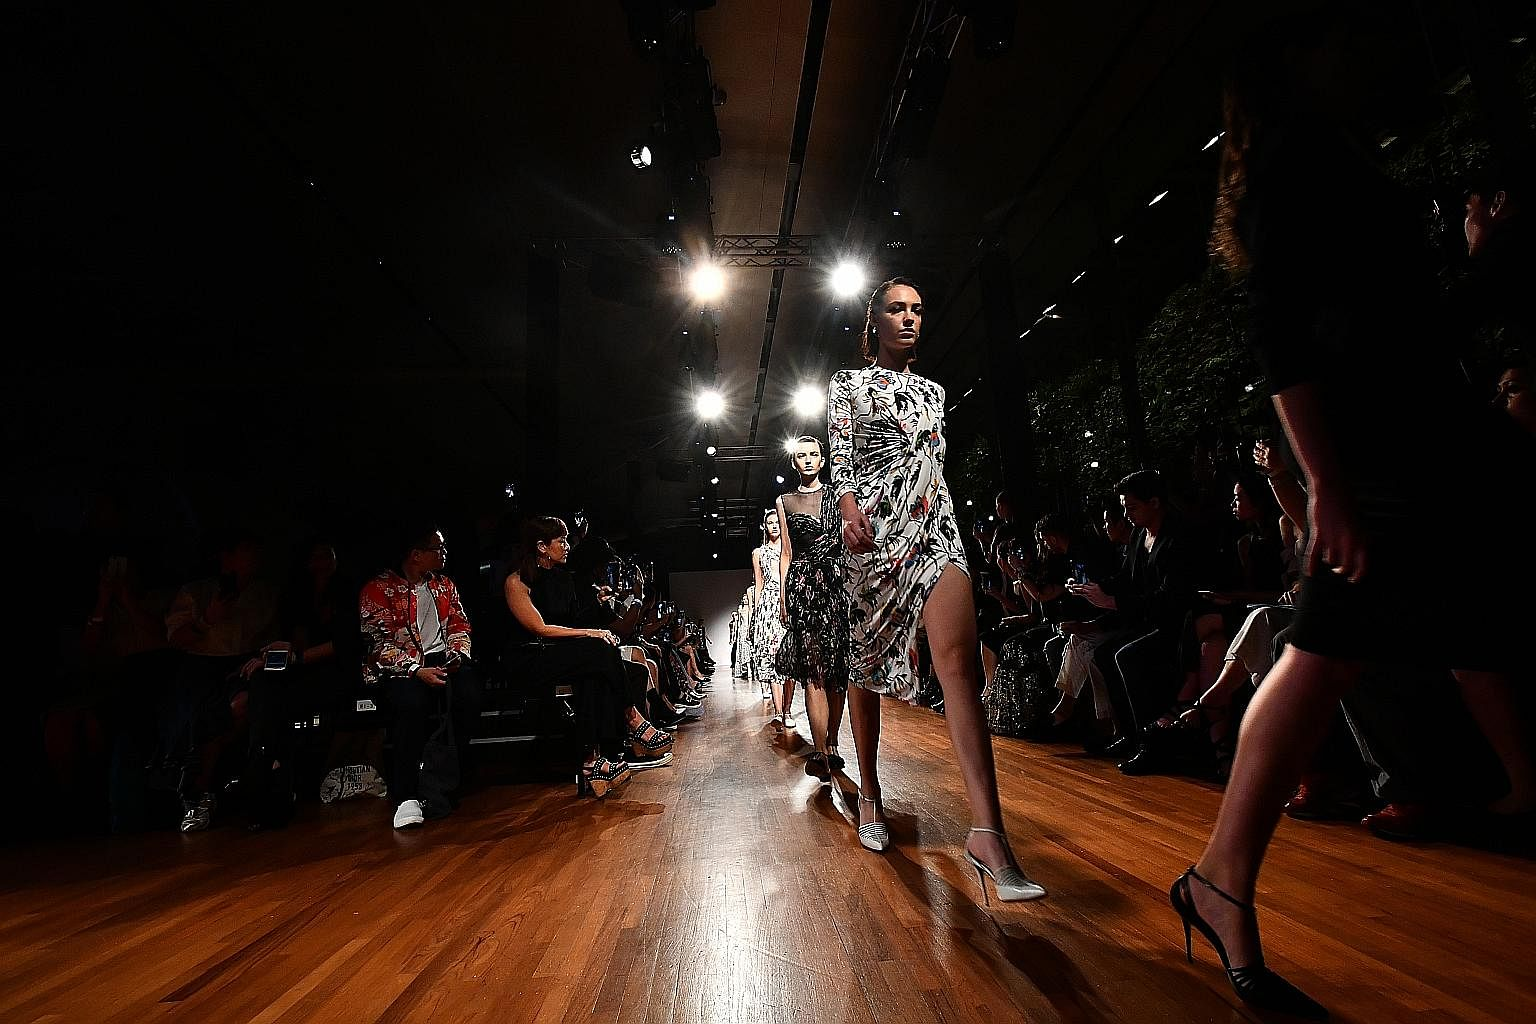 The Curtain Falls On Singapore Fashion Week Fashion News Top Stories The Straits Times